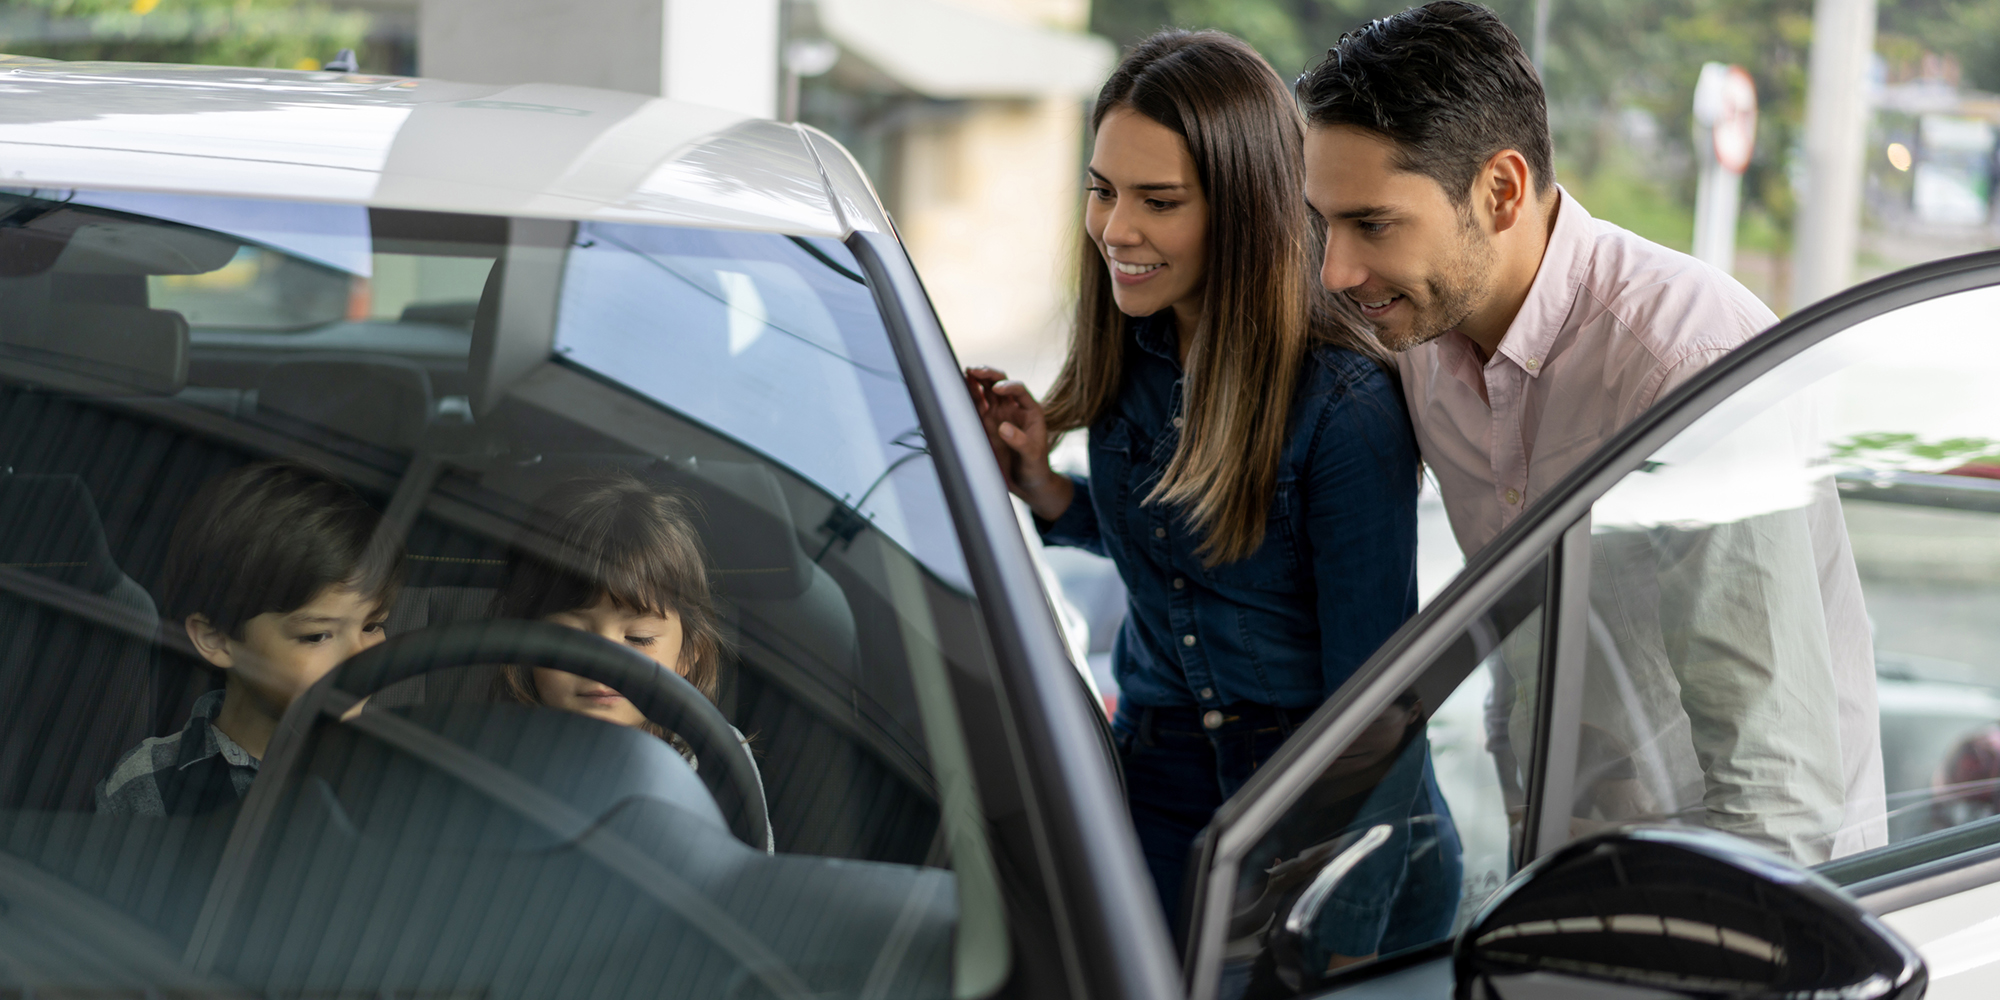 Man and Woman Smiling Outside Car with Two Children in Driver Seat